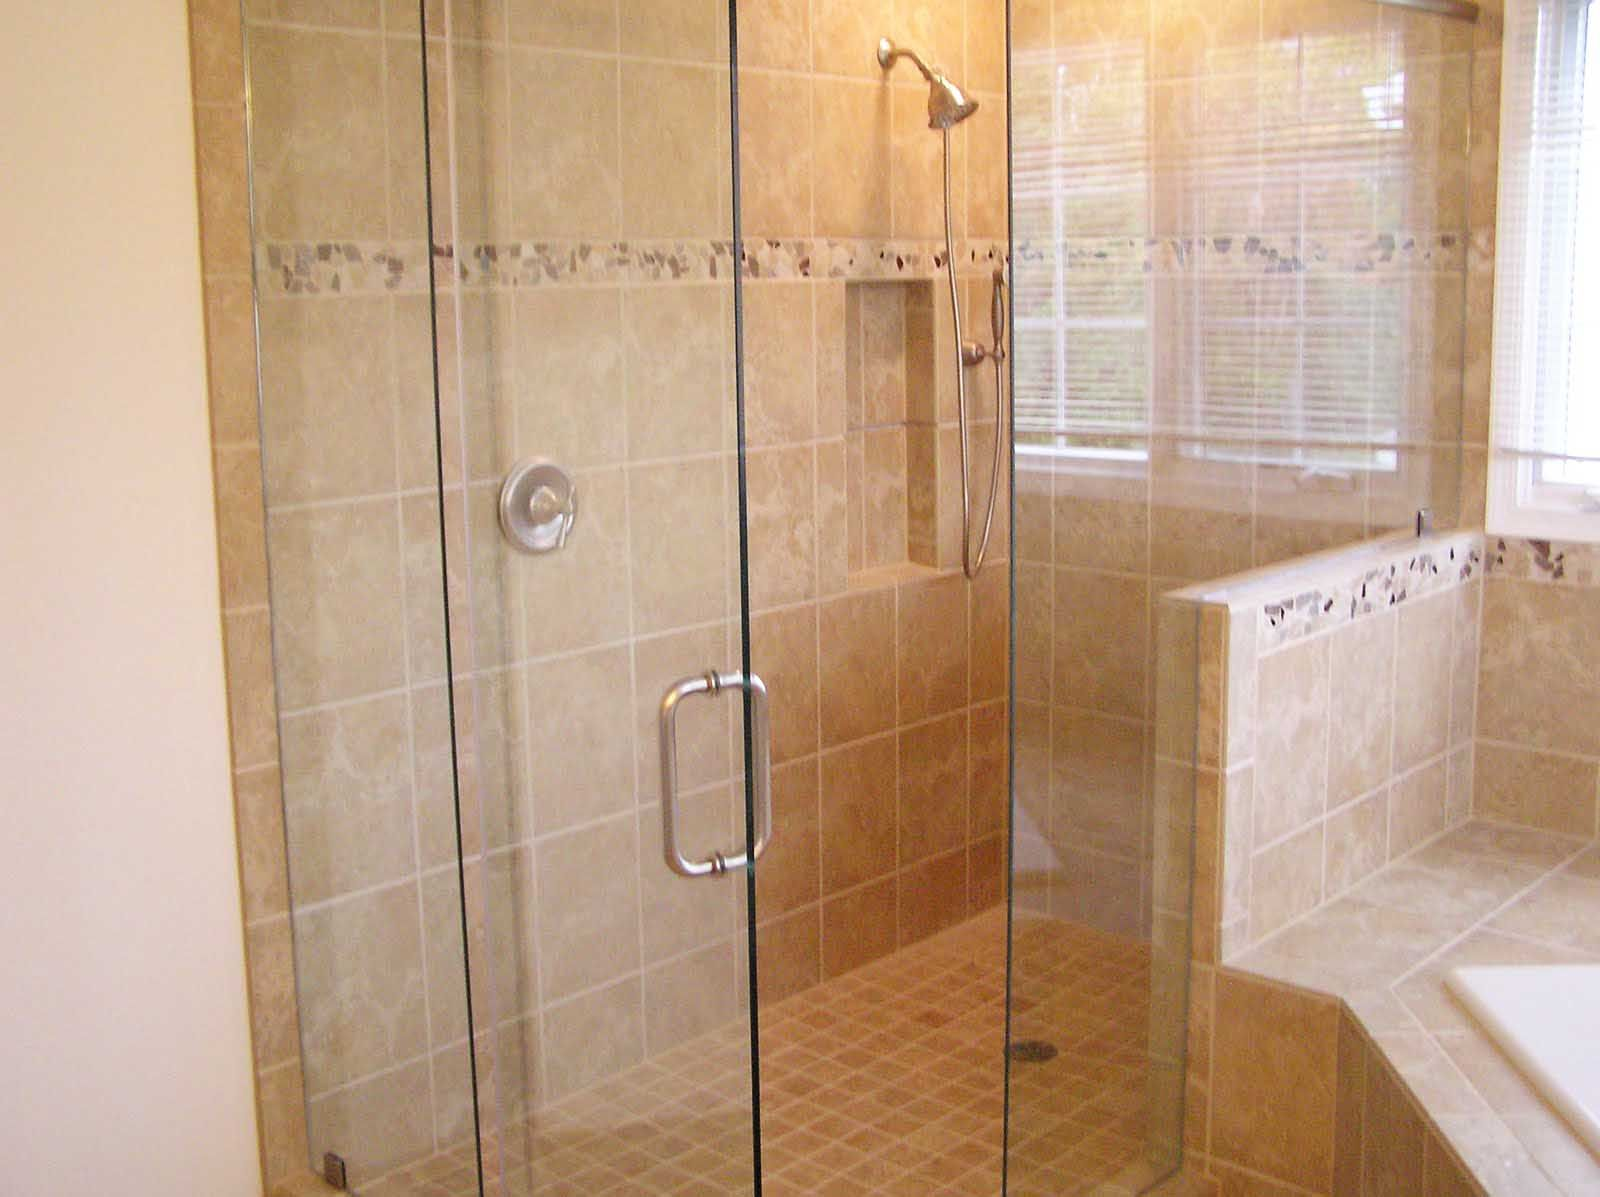 Design Ideas Tile Bathroom Shower Design Gallery Ideas Home Trend -  Interiornity